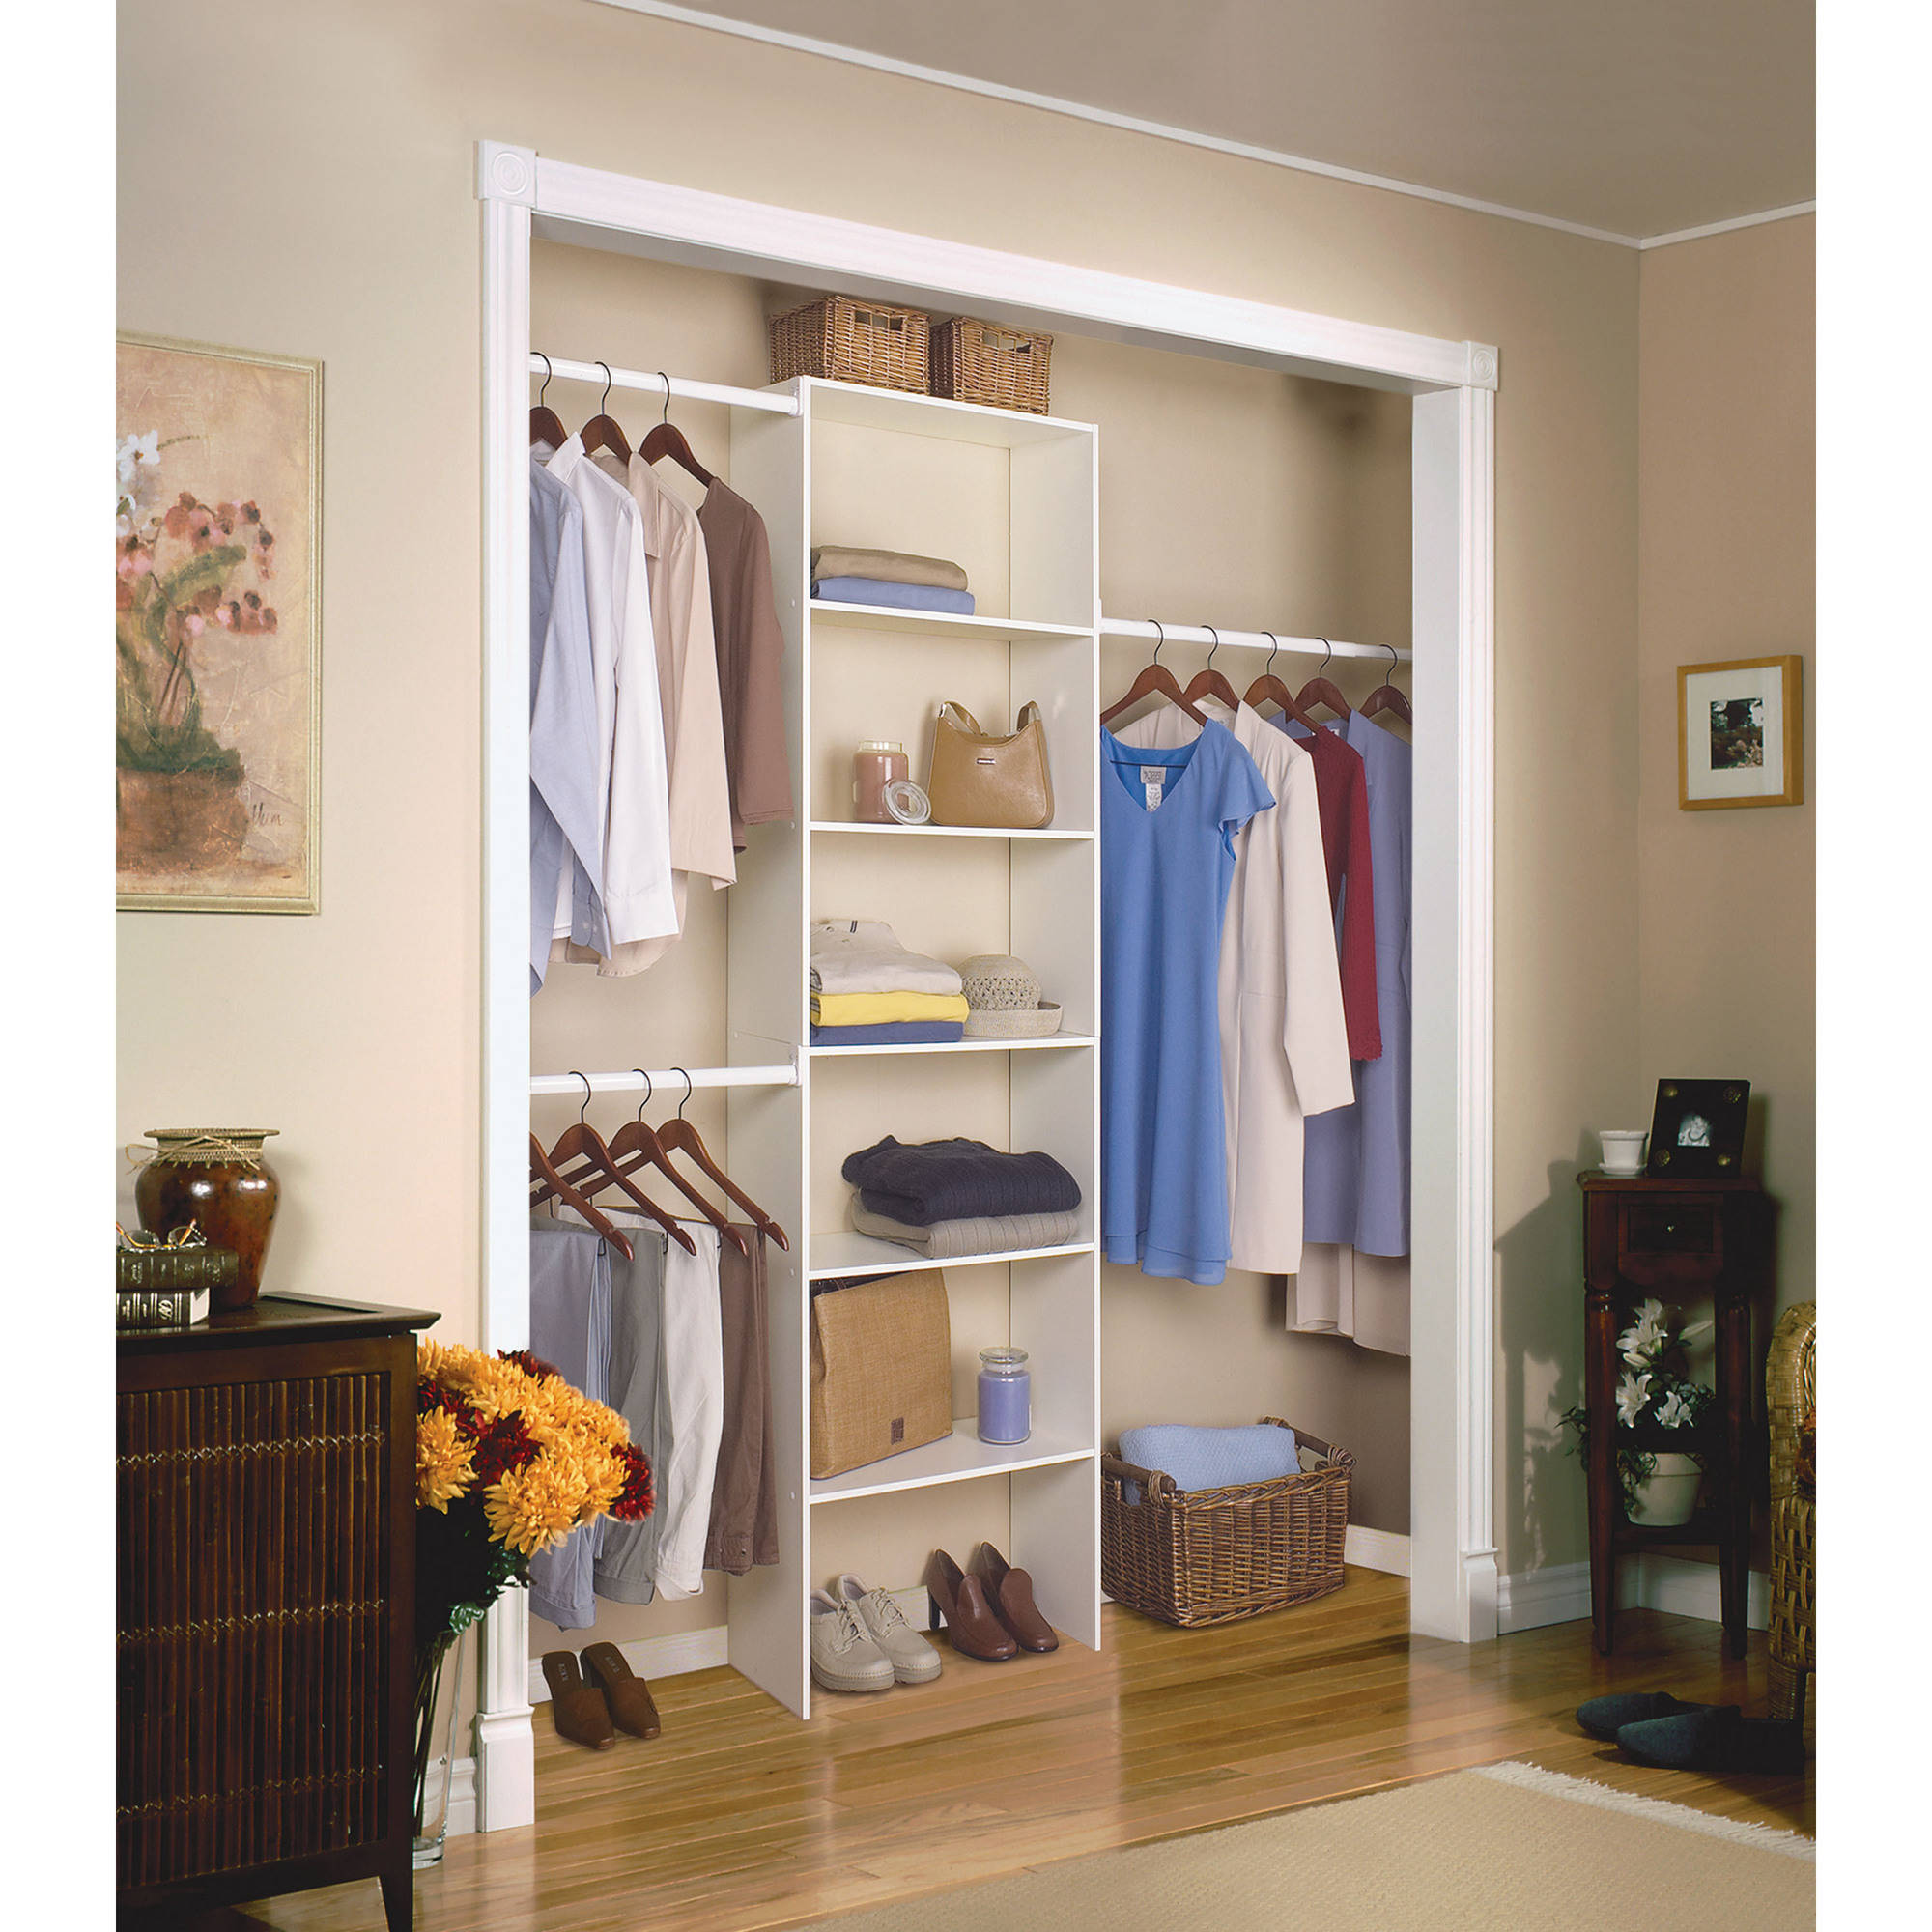 Vertical Closet Organizer Clothes Storage Shelf System Wood Shelves Rh Ebay  Com Diy Storage Shelves For Closet Storage Shelves For Linen Closet